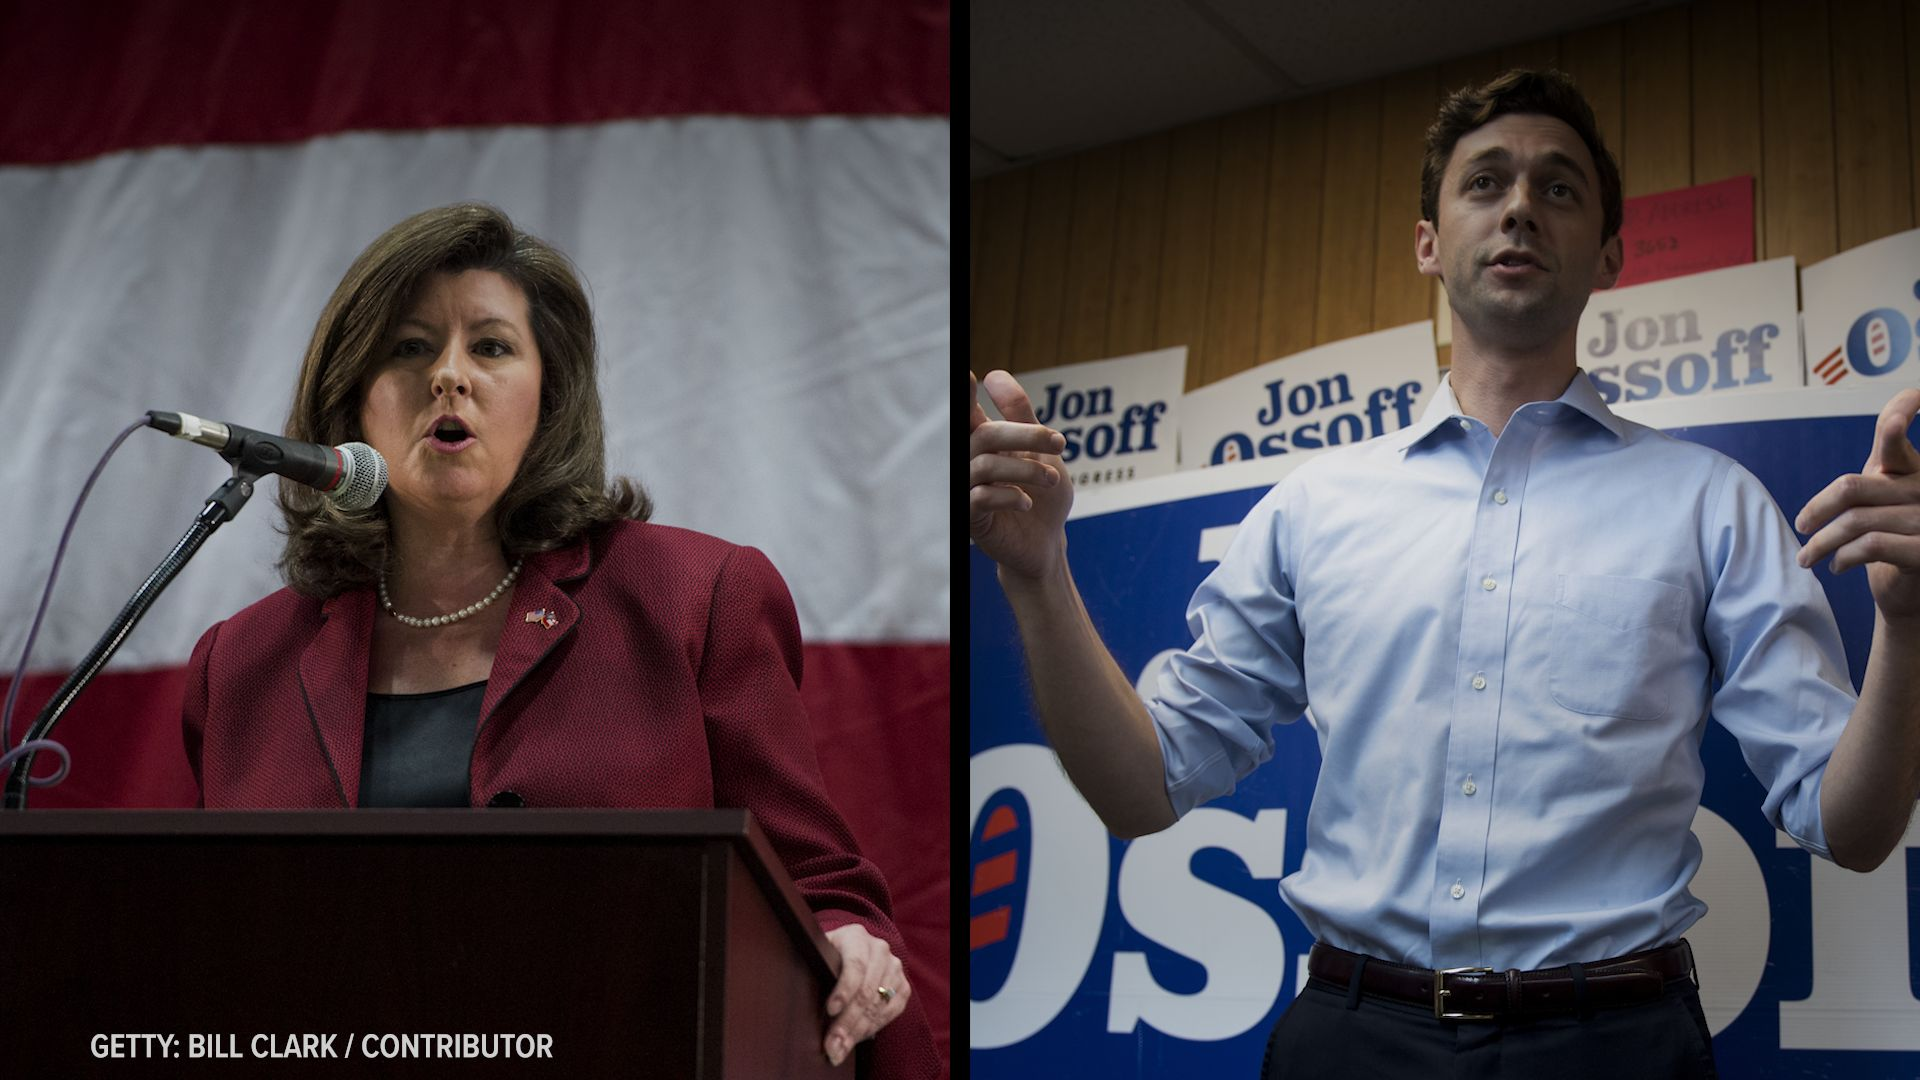 The crucial race between Karen Handel and Jon Ossoff has serious implications for national politics